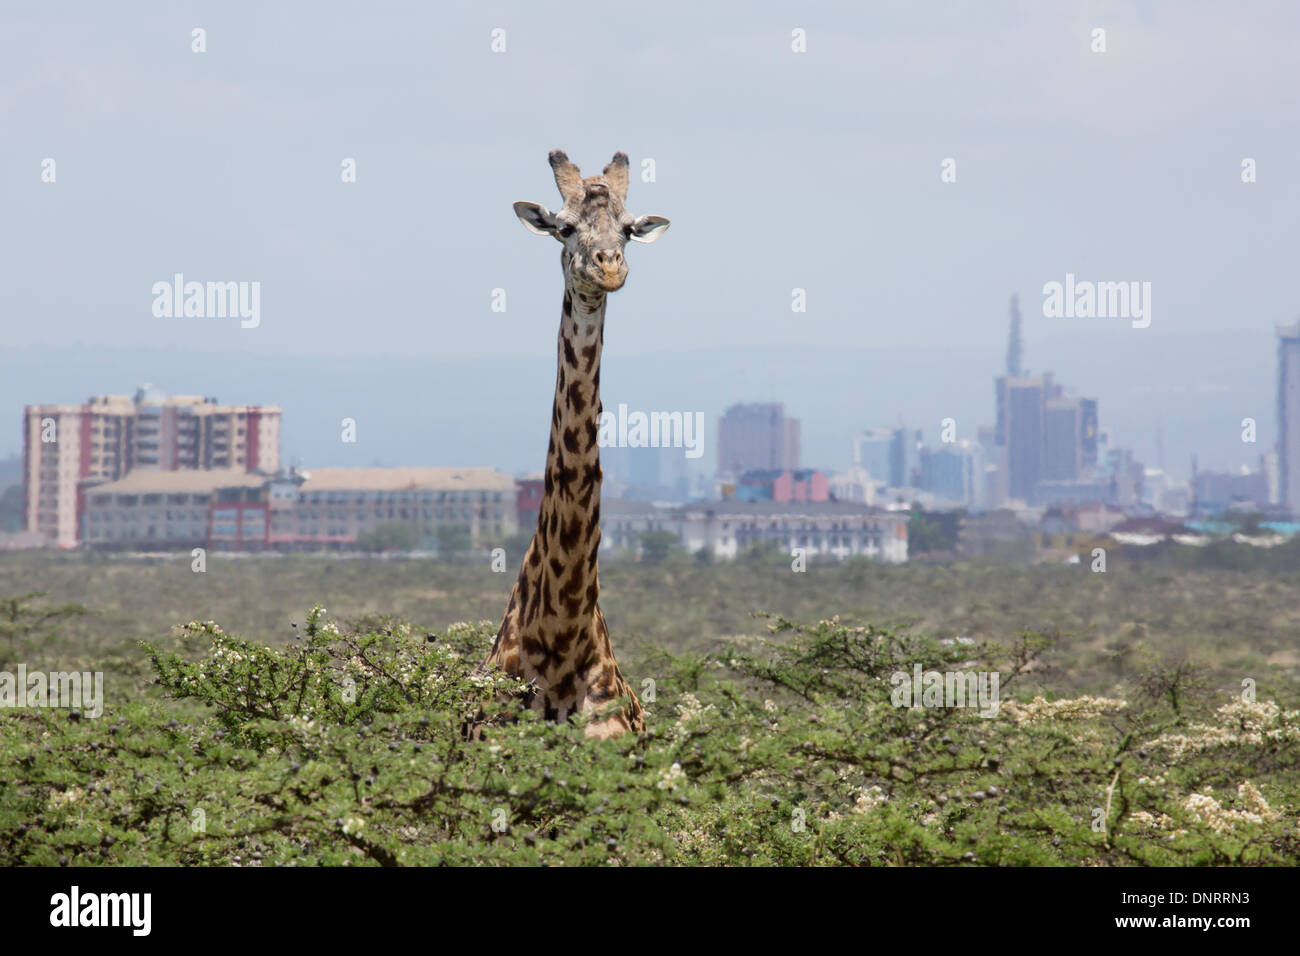 Giraffe with city skyscrapers beyond. Nairobi National Park, Kenya - Stock Image